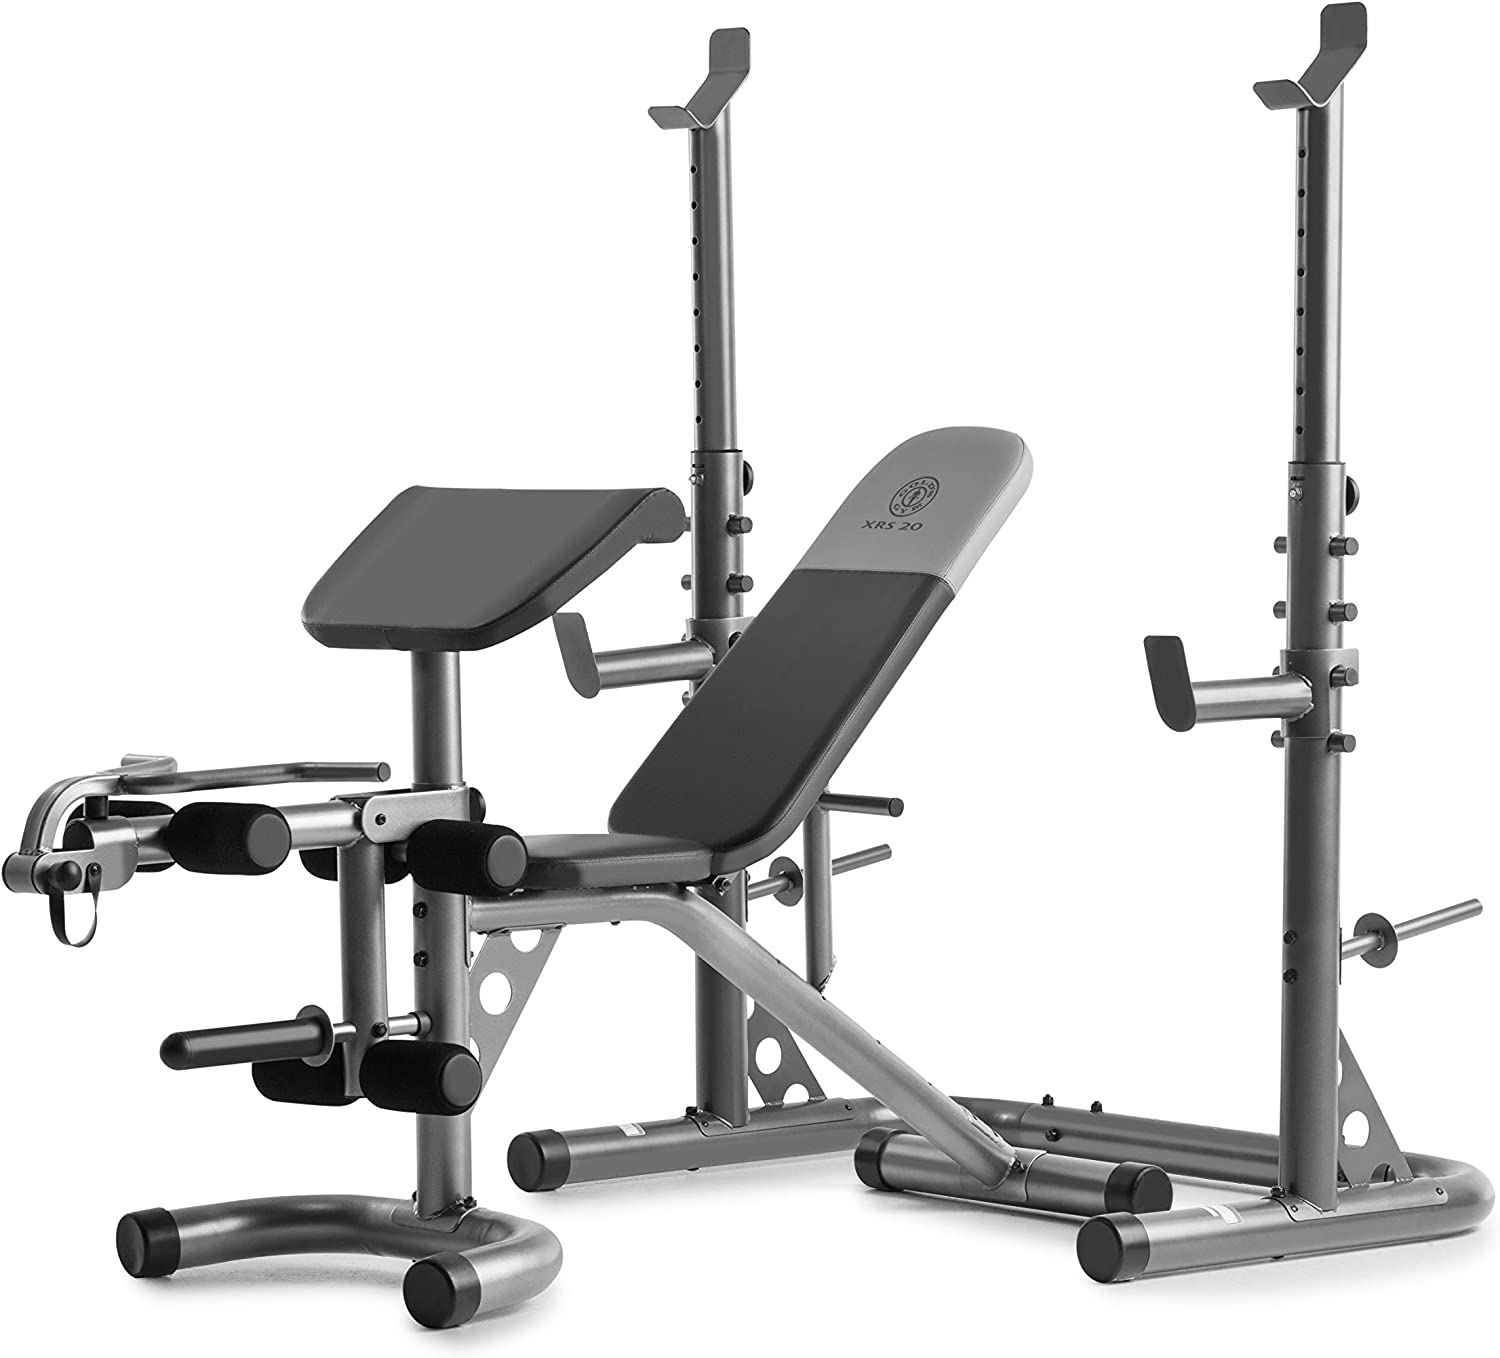 Amazon.com : Gold's Gym XRS 20 Adjustable Olympic Workout Bench with Squat Rack, Leg Extension, Preacher Curl, and Weight Storage : Sports & Outdoors